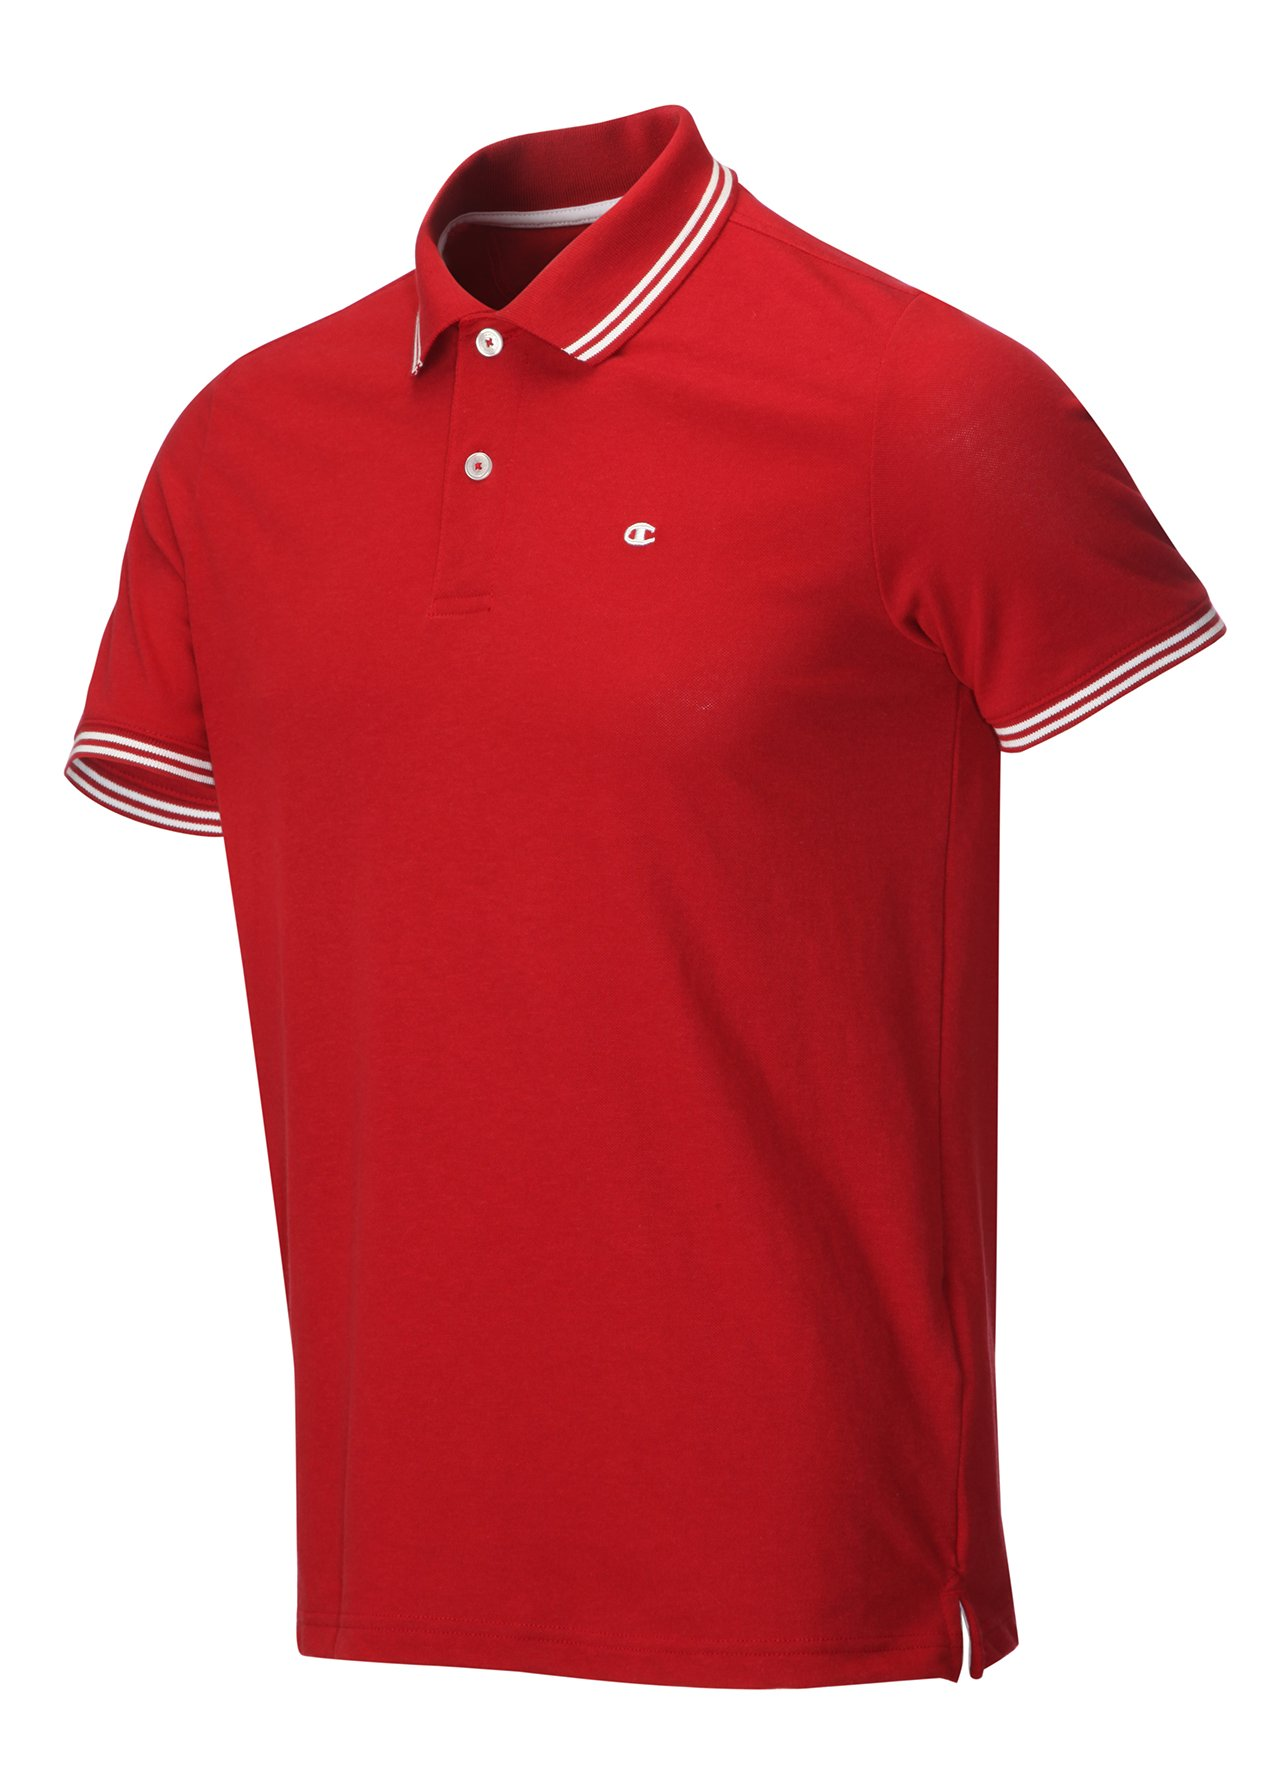 Champion Mens Pique Golf Polo Shirt Sports Top Clothing 56 ...